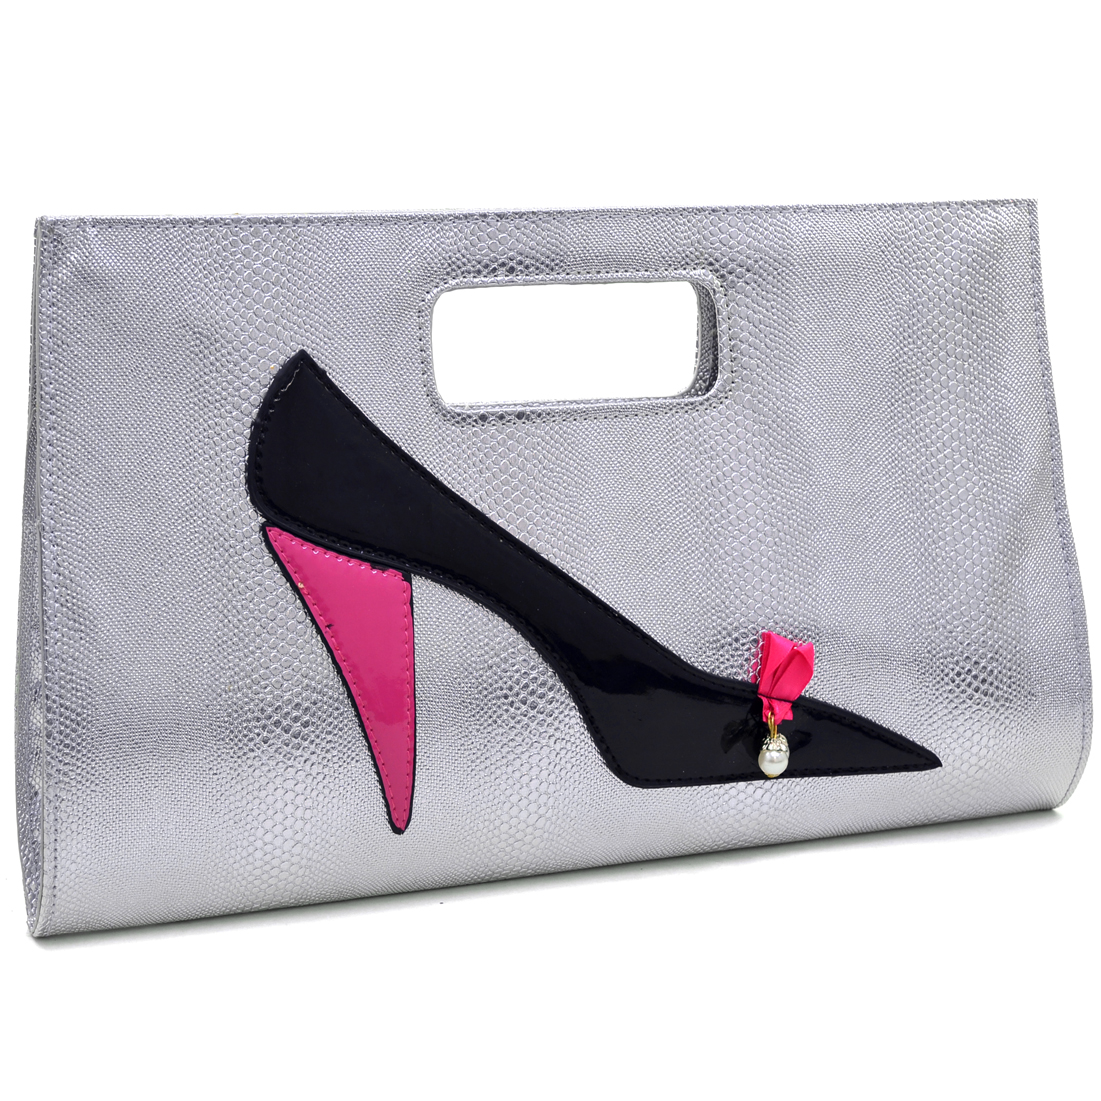 Dasein® High Heel on Snakeskin Textured Evening Clutches